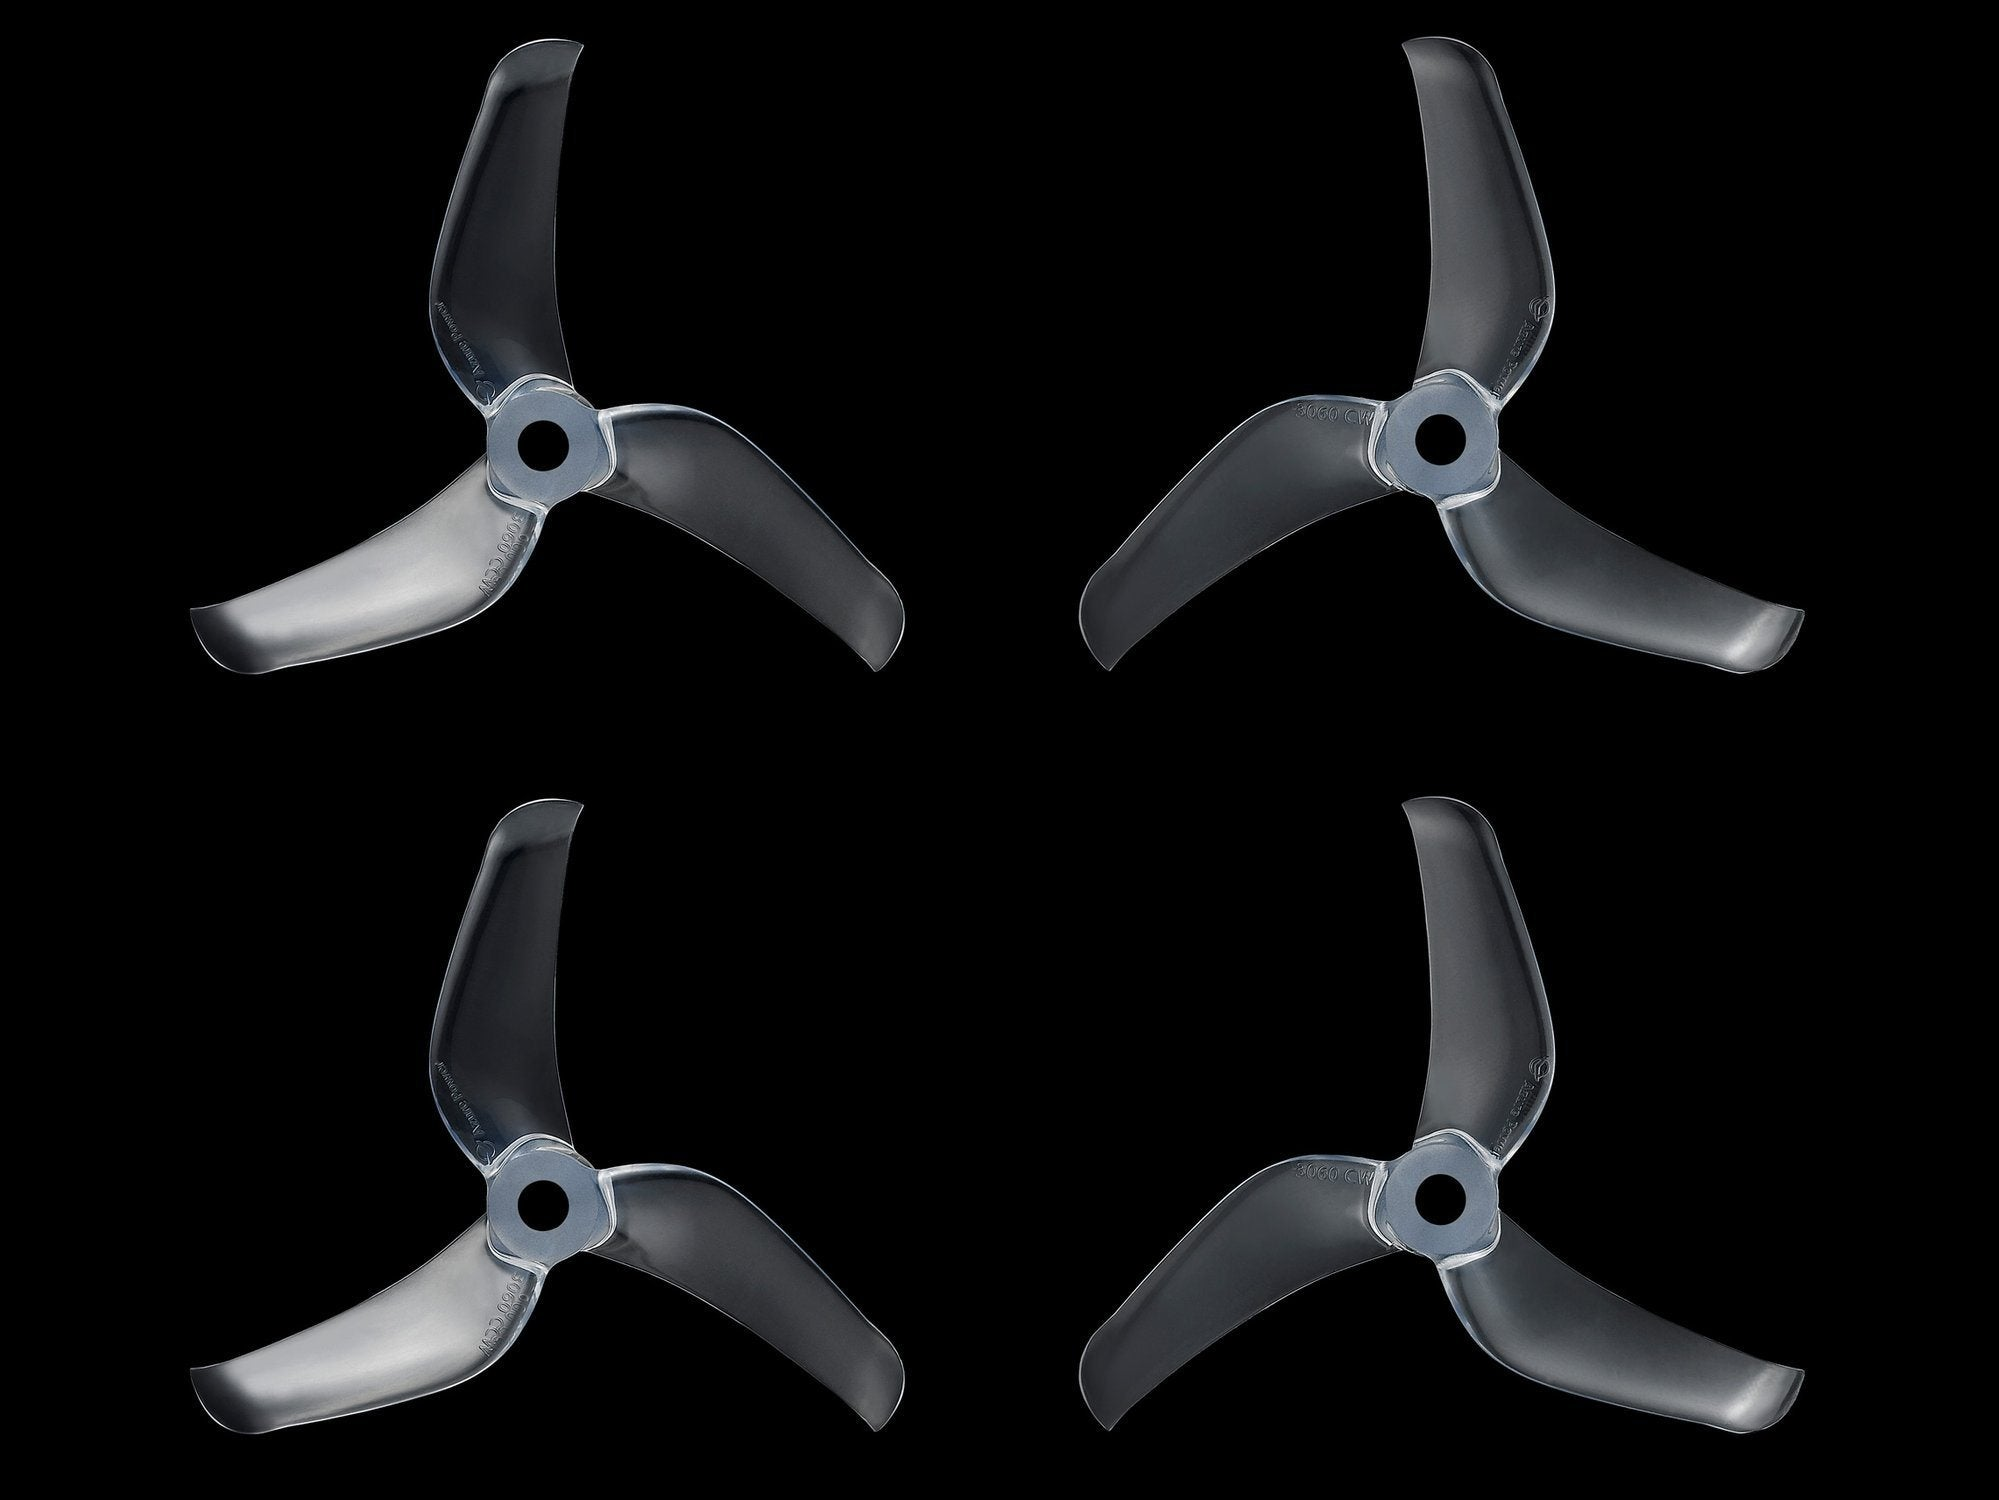 Azure Power 3060 - 3 Blade Prop (Set of 4) Azure Power